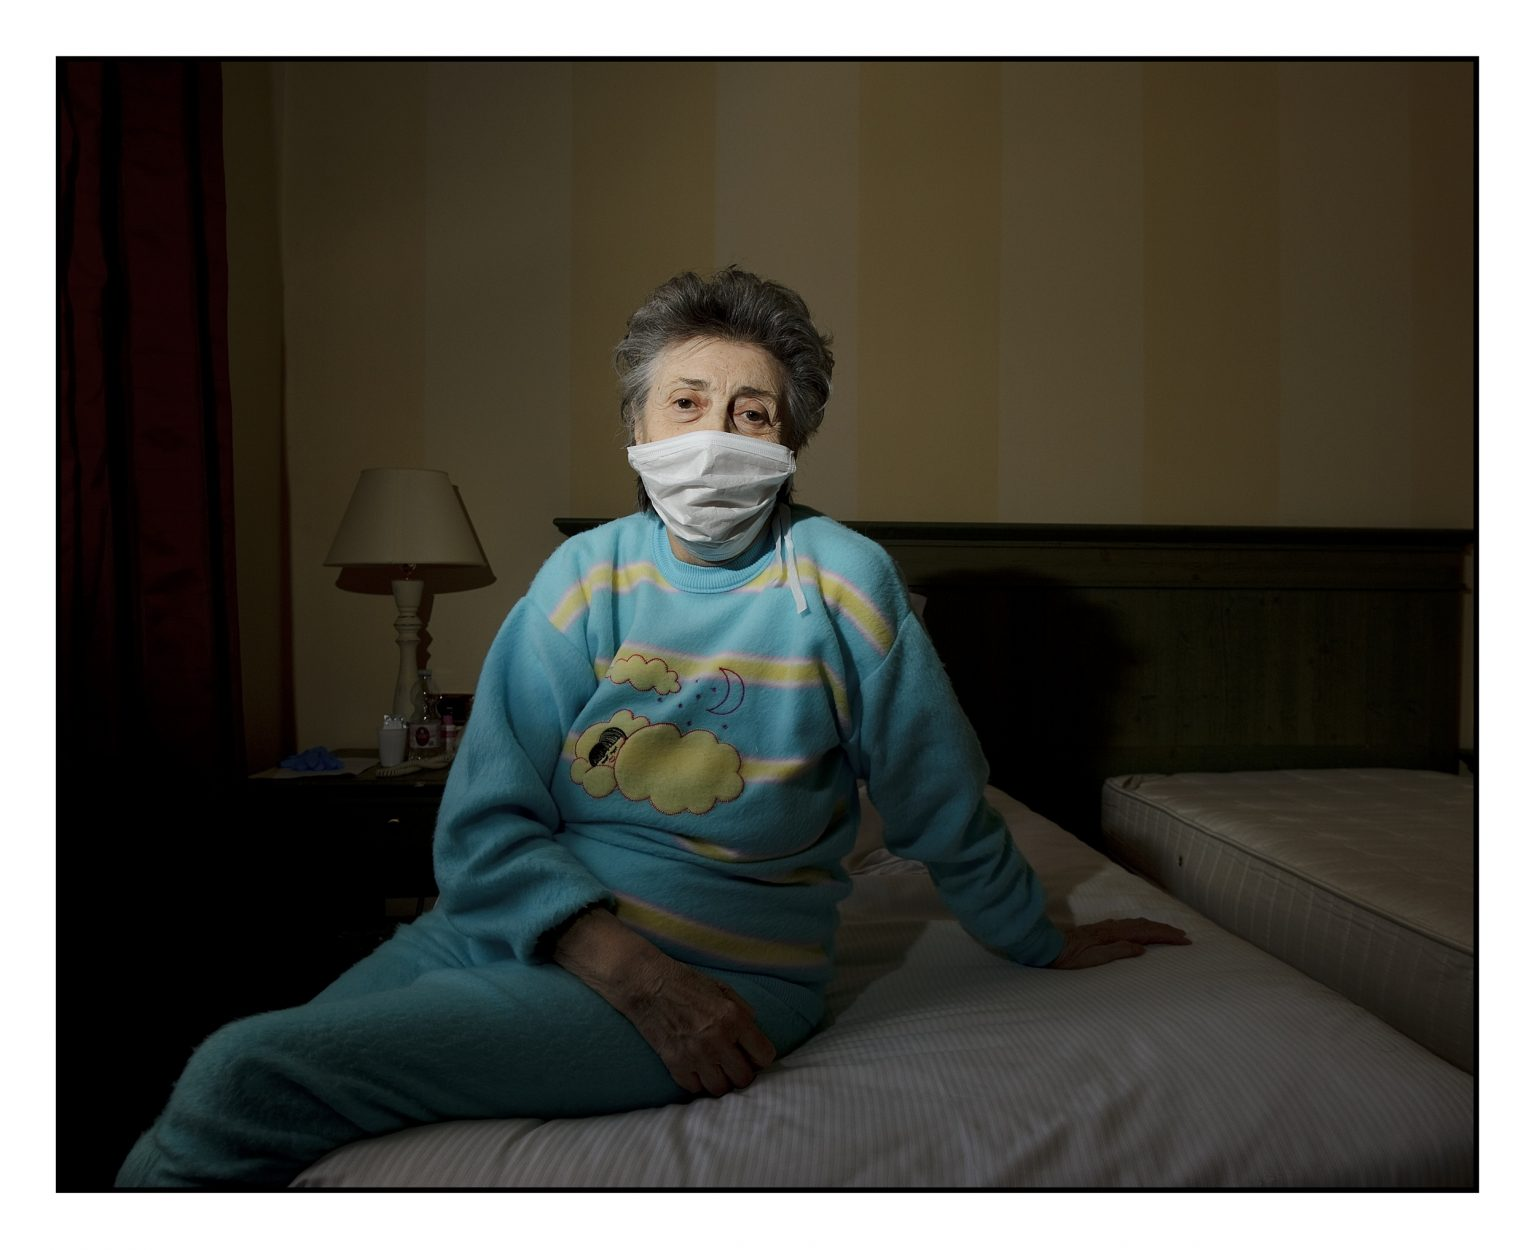 Ms. Pierluigia, guest of the room 430 of the Muratella S.r.l hotel during her quarantine, being Covid-19 positive. This hotel is one of the few ones of the province where people who have developed the virus are welcomed. Everyone remains isolated and after fourteen days, if the course of the disease is over and he tests negative for the swabs, he can go home. Cologno al Serio, Bergamo province, April 15th 2020